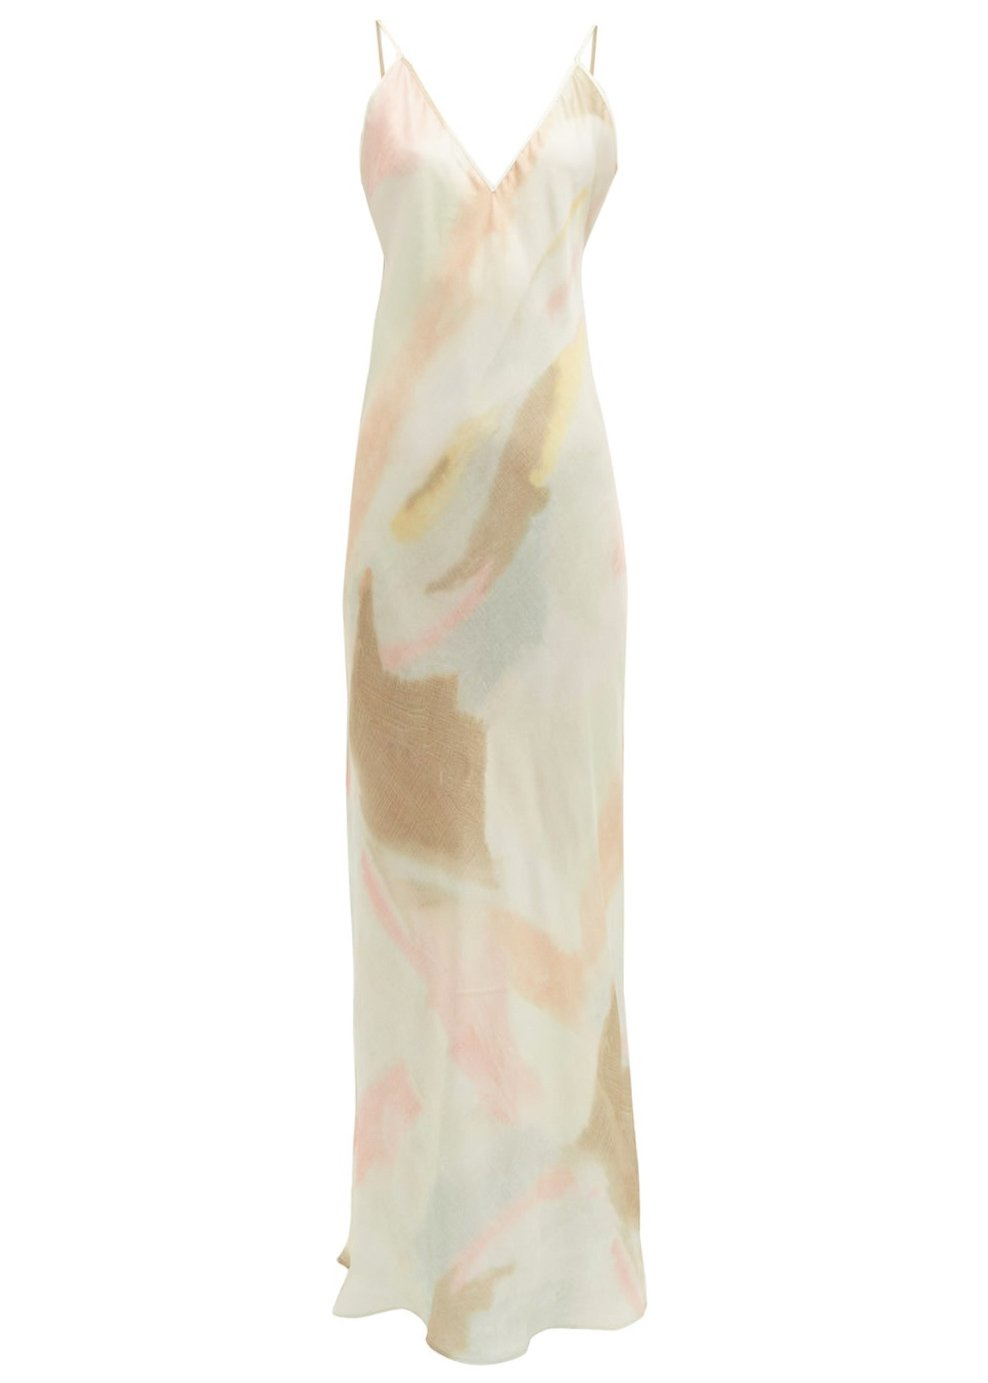 Rent Rat & Boa Pastel Tie-Dye Slip Dress from Rotaro